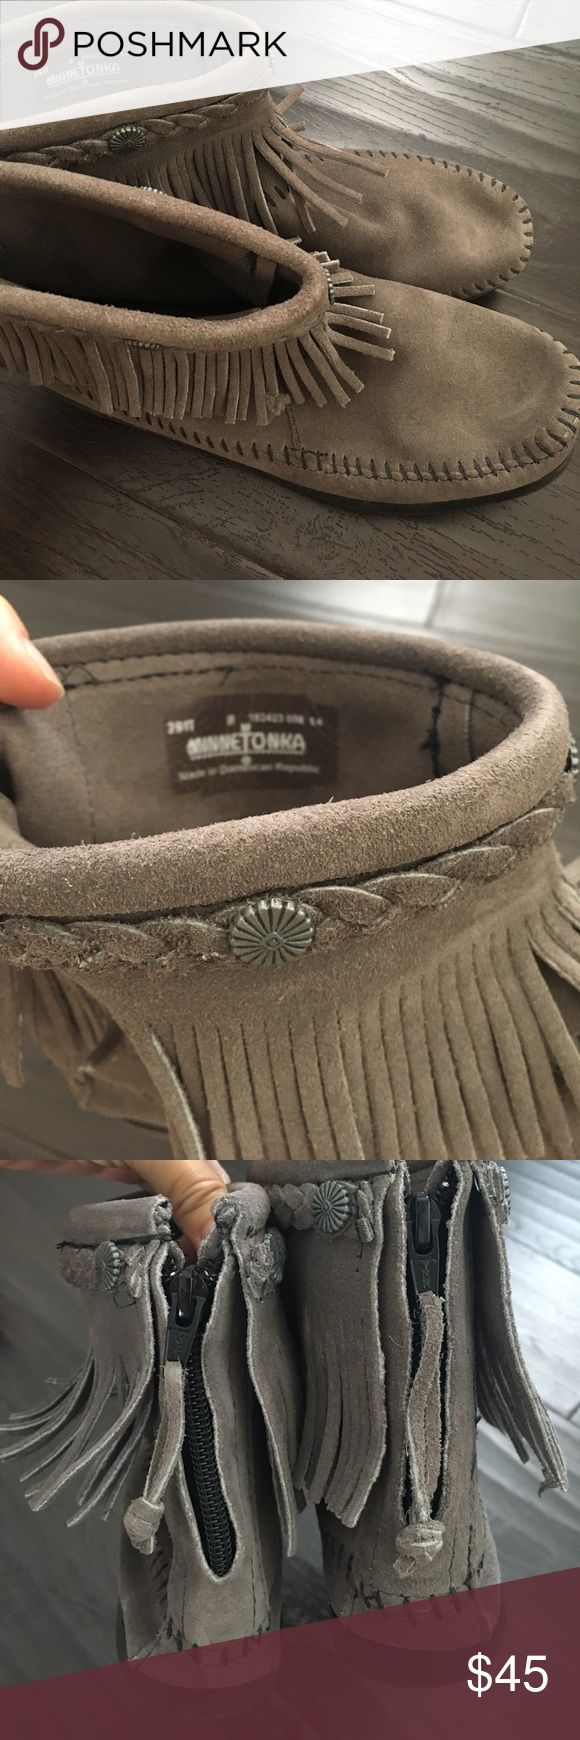 Size 8 Authentic Minnetonka Indian Grey Slippers Practically new Authentic Minnetonka Suede Grey Slippers in size 8.  These were worn out ONLY 1 time but too narrow for my extra wide feet. Minnetonka Shoes Moccasins